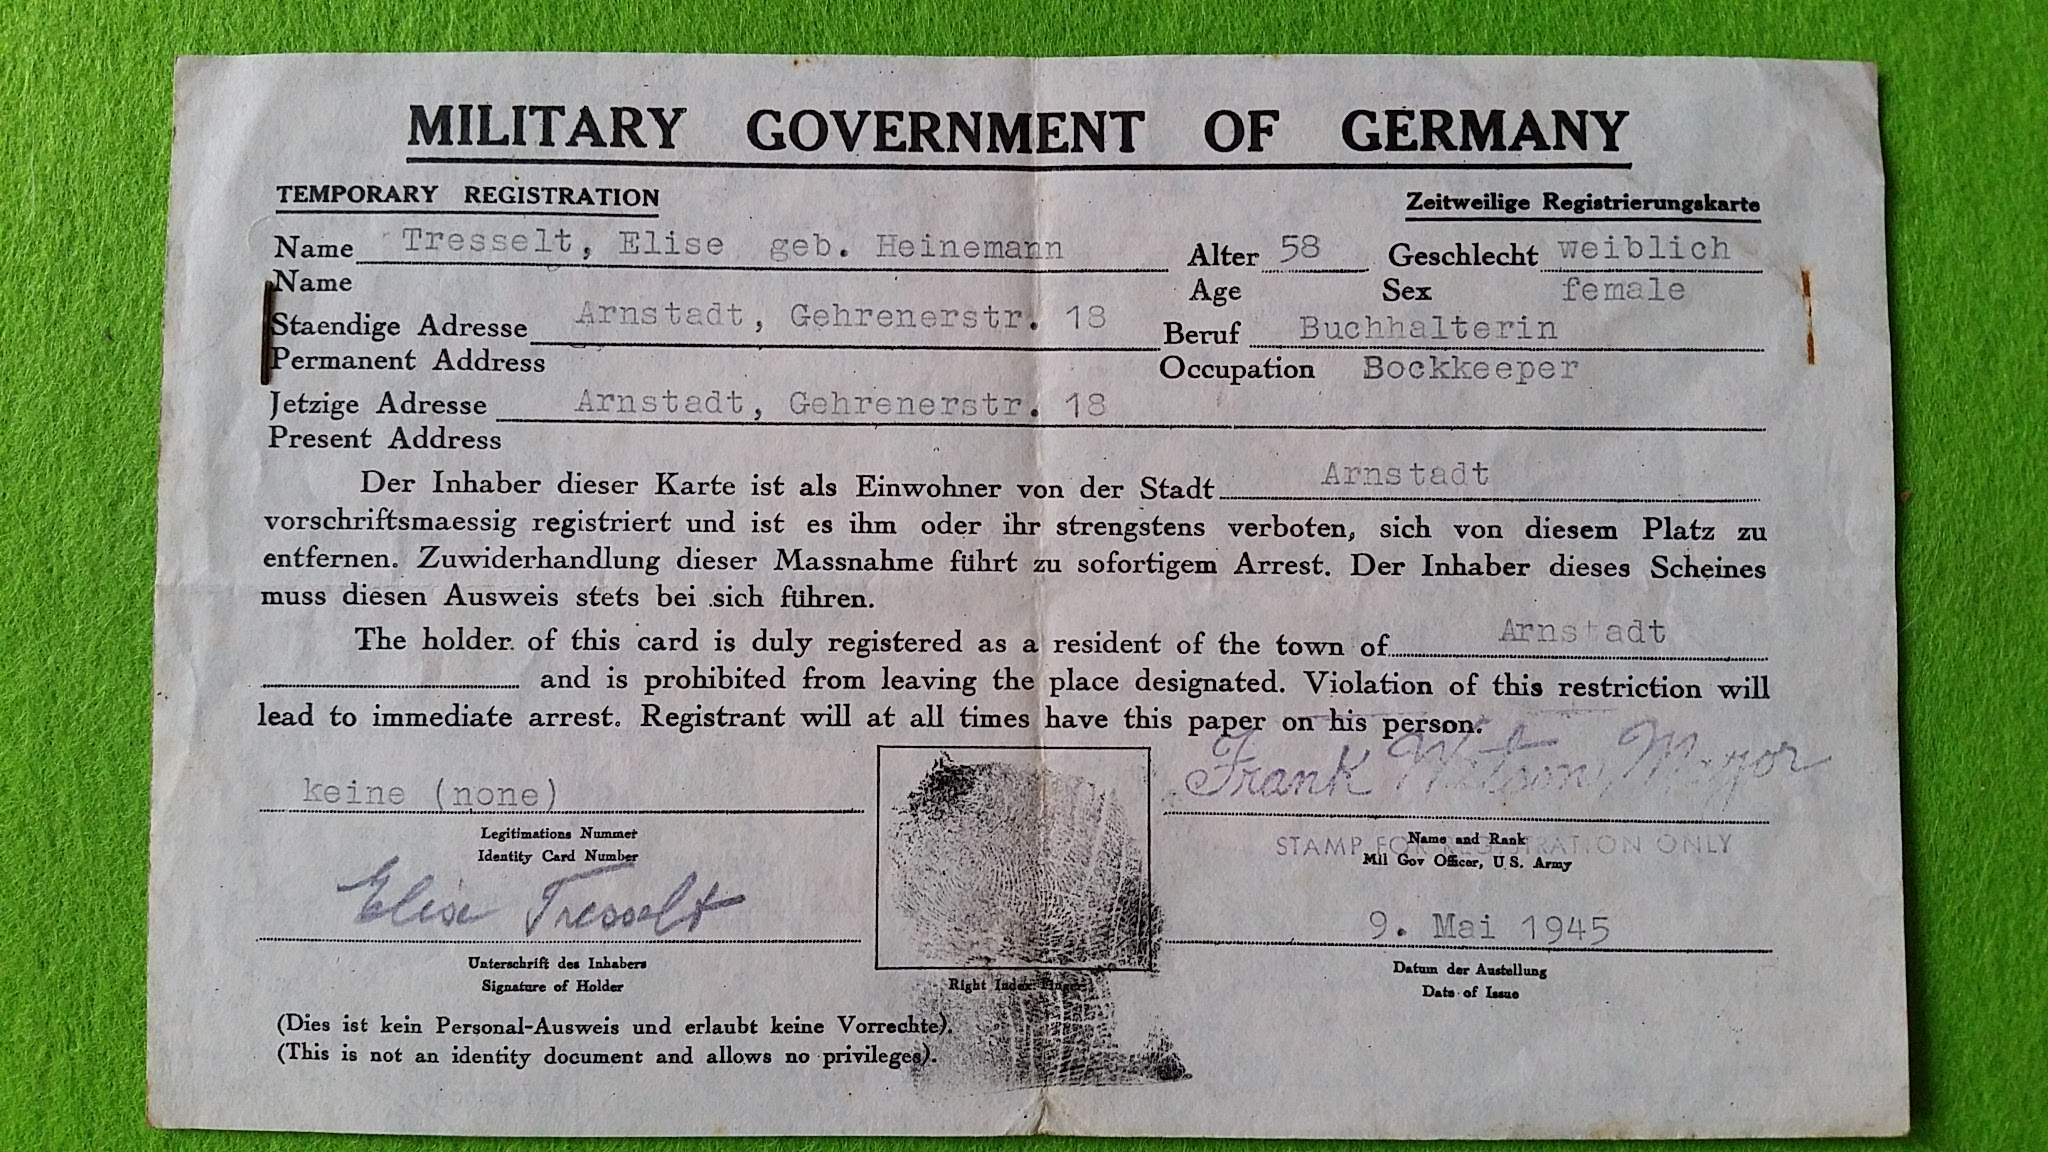 Passierschein, 9. Mai 1945, Military Government of Germany